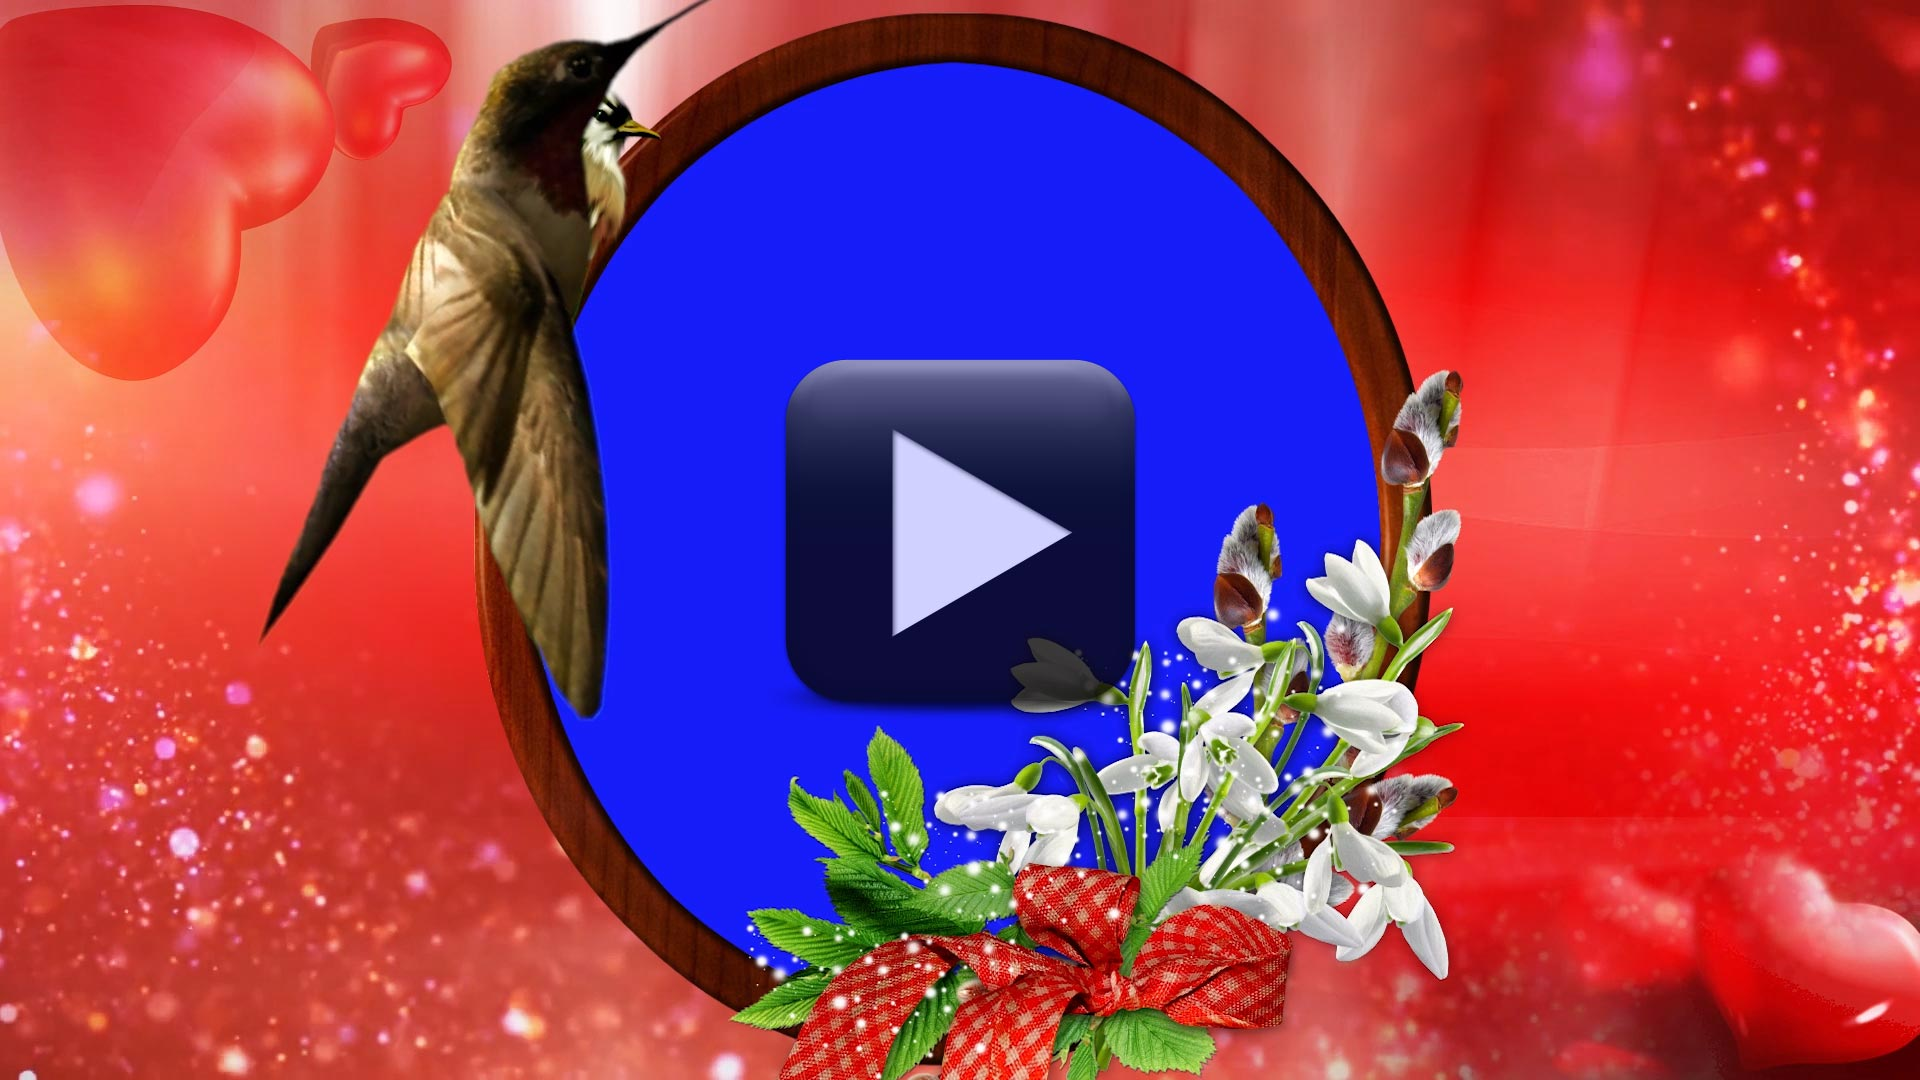 100 Free Wedding Background Video Effects In Hd All Design Creative